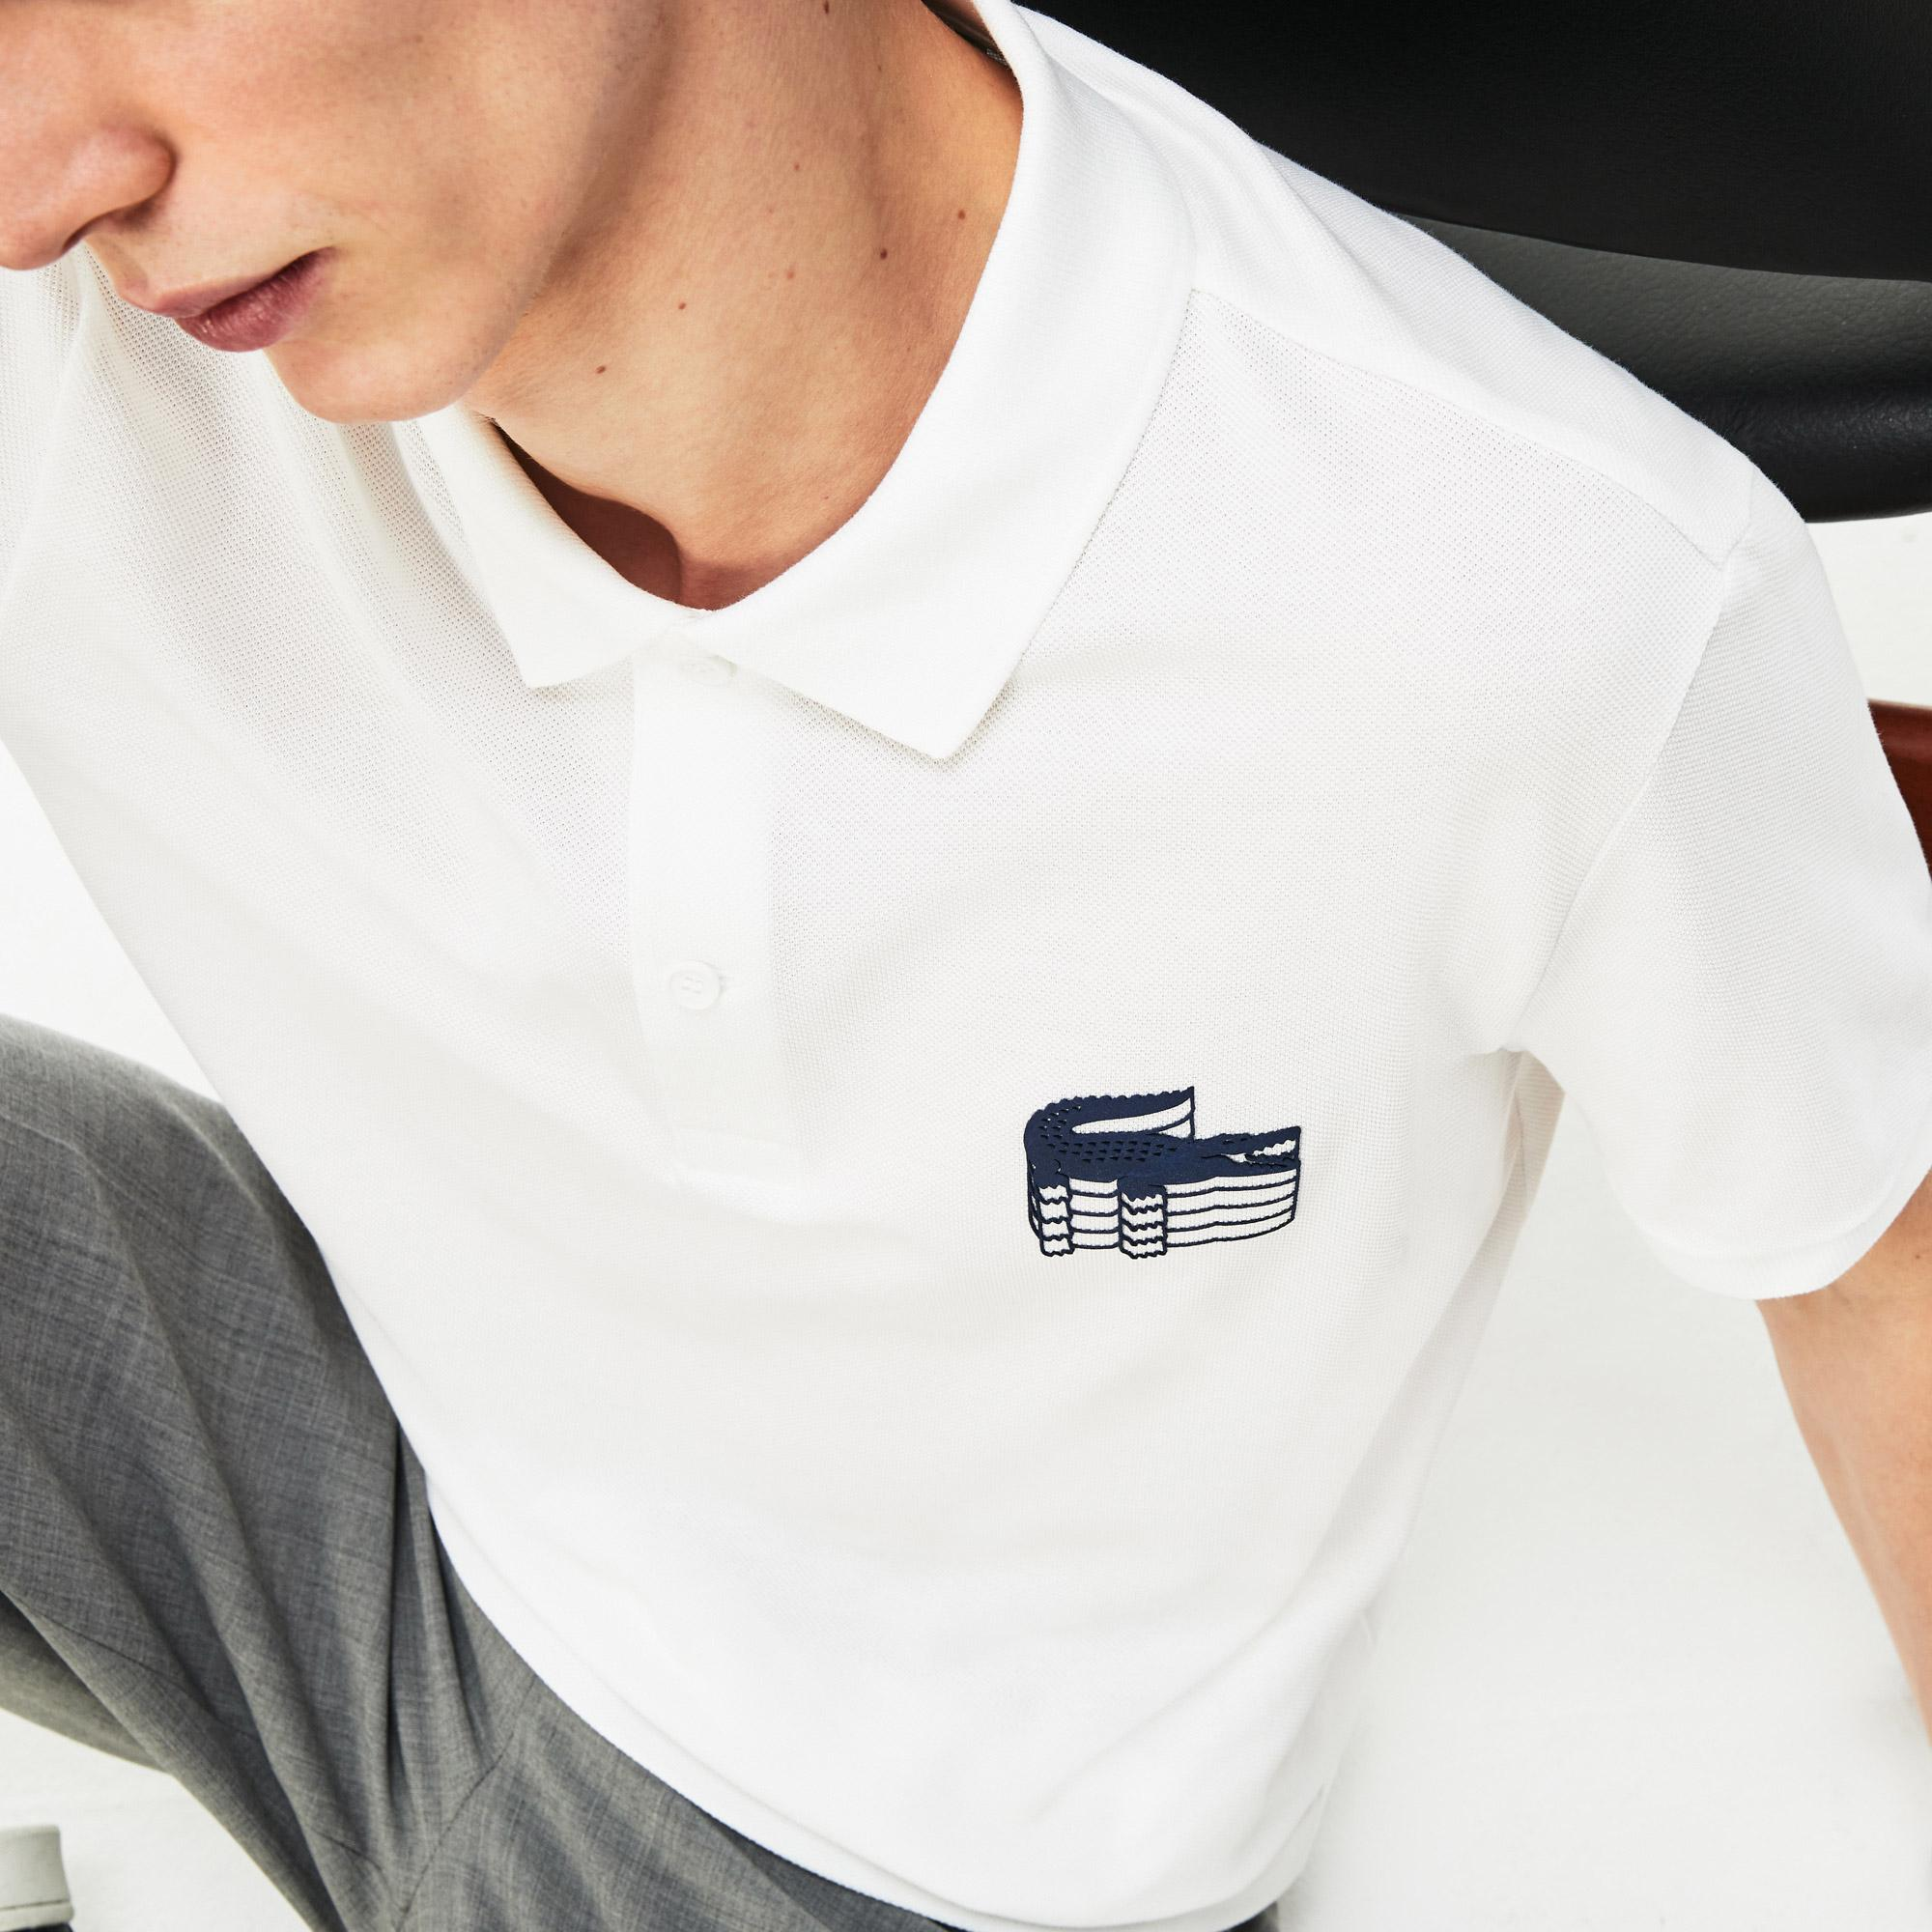 Lacoste Men's Slim Fit 3D Croc Cotton Petit Piqué Polo